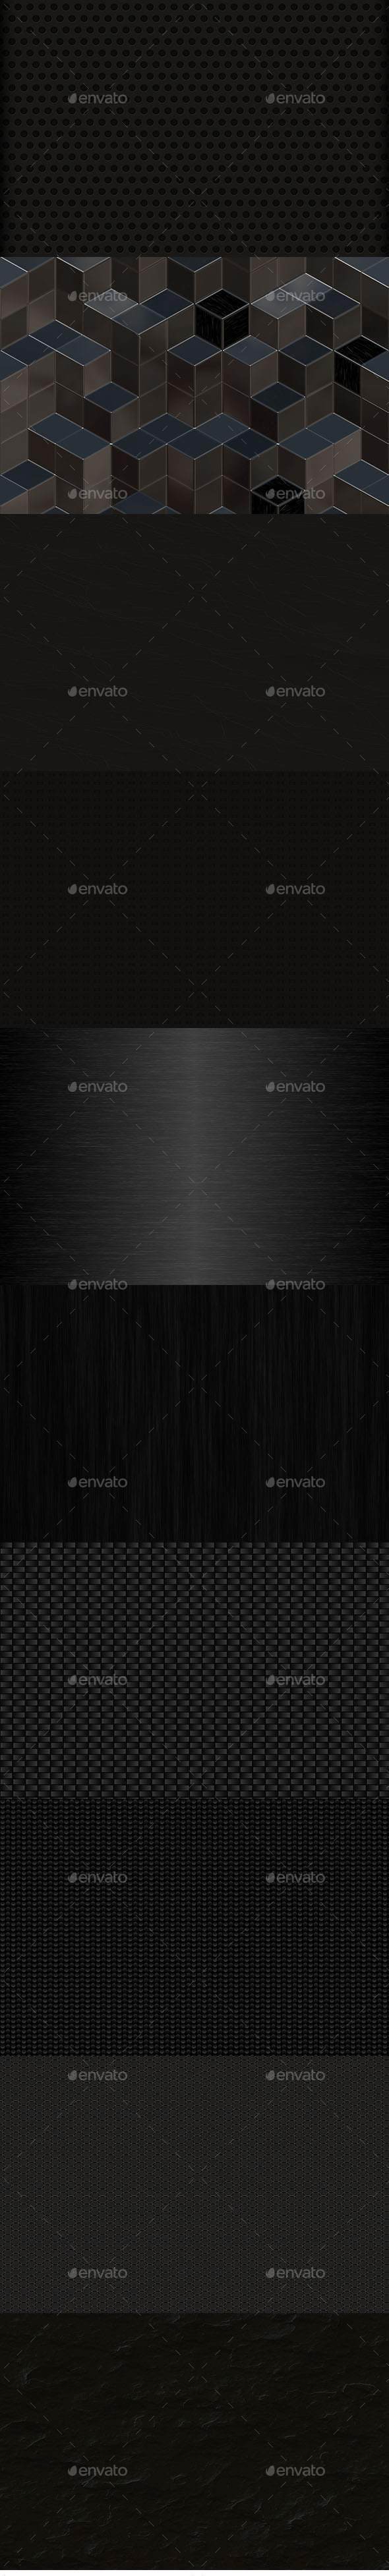 GraphicRiver Black Backgrounds 10155055